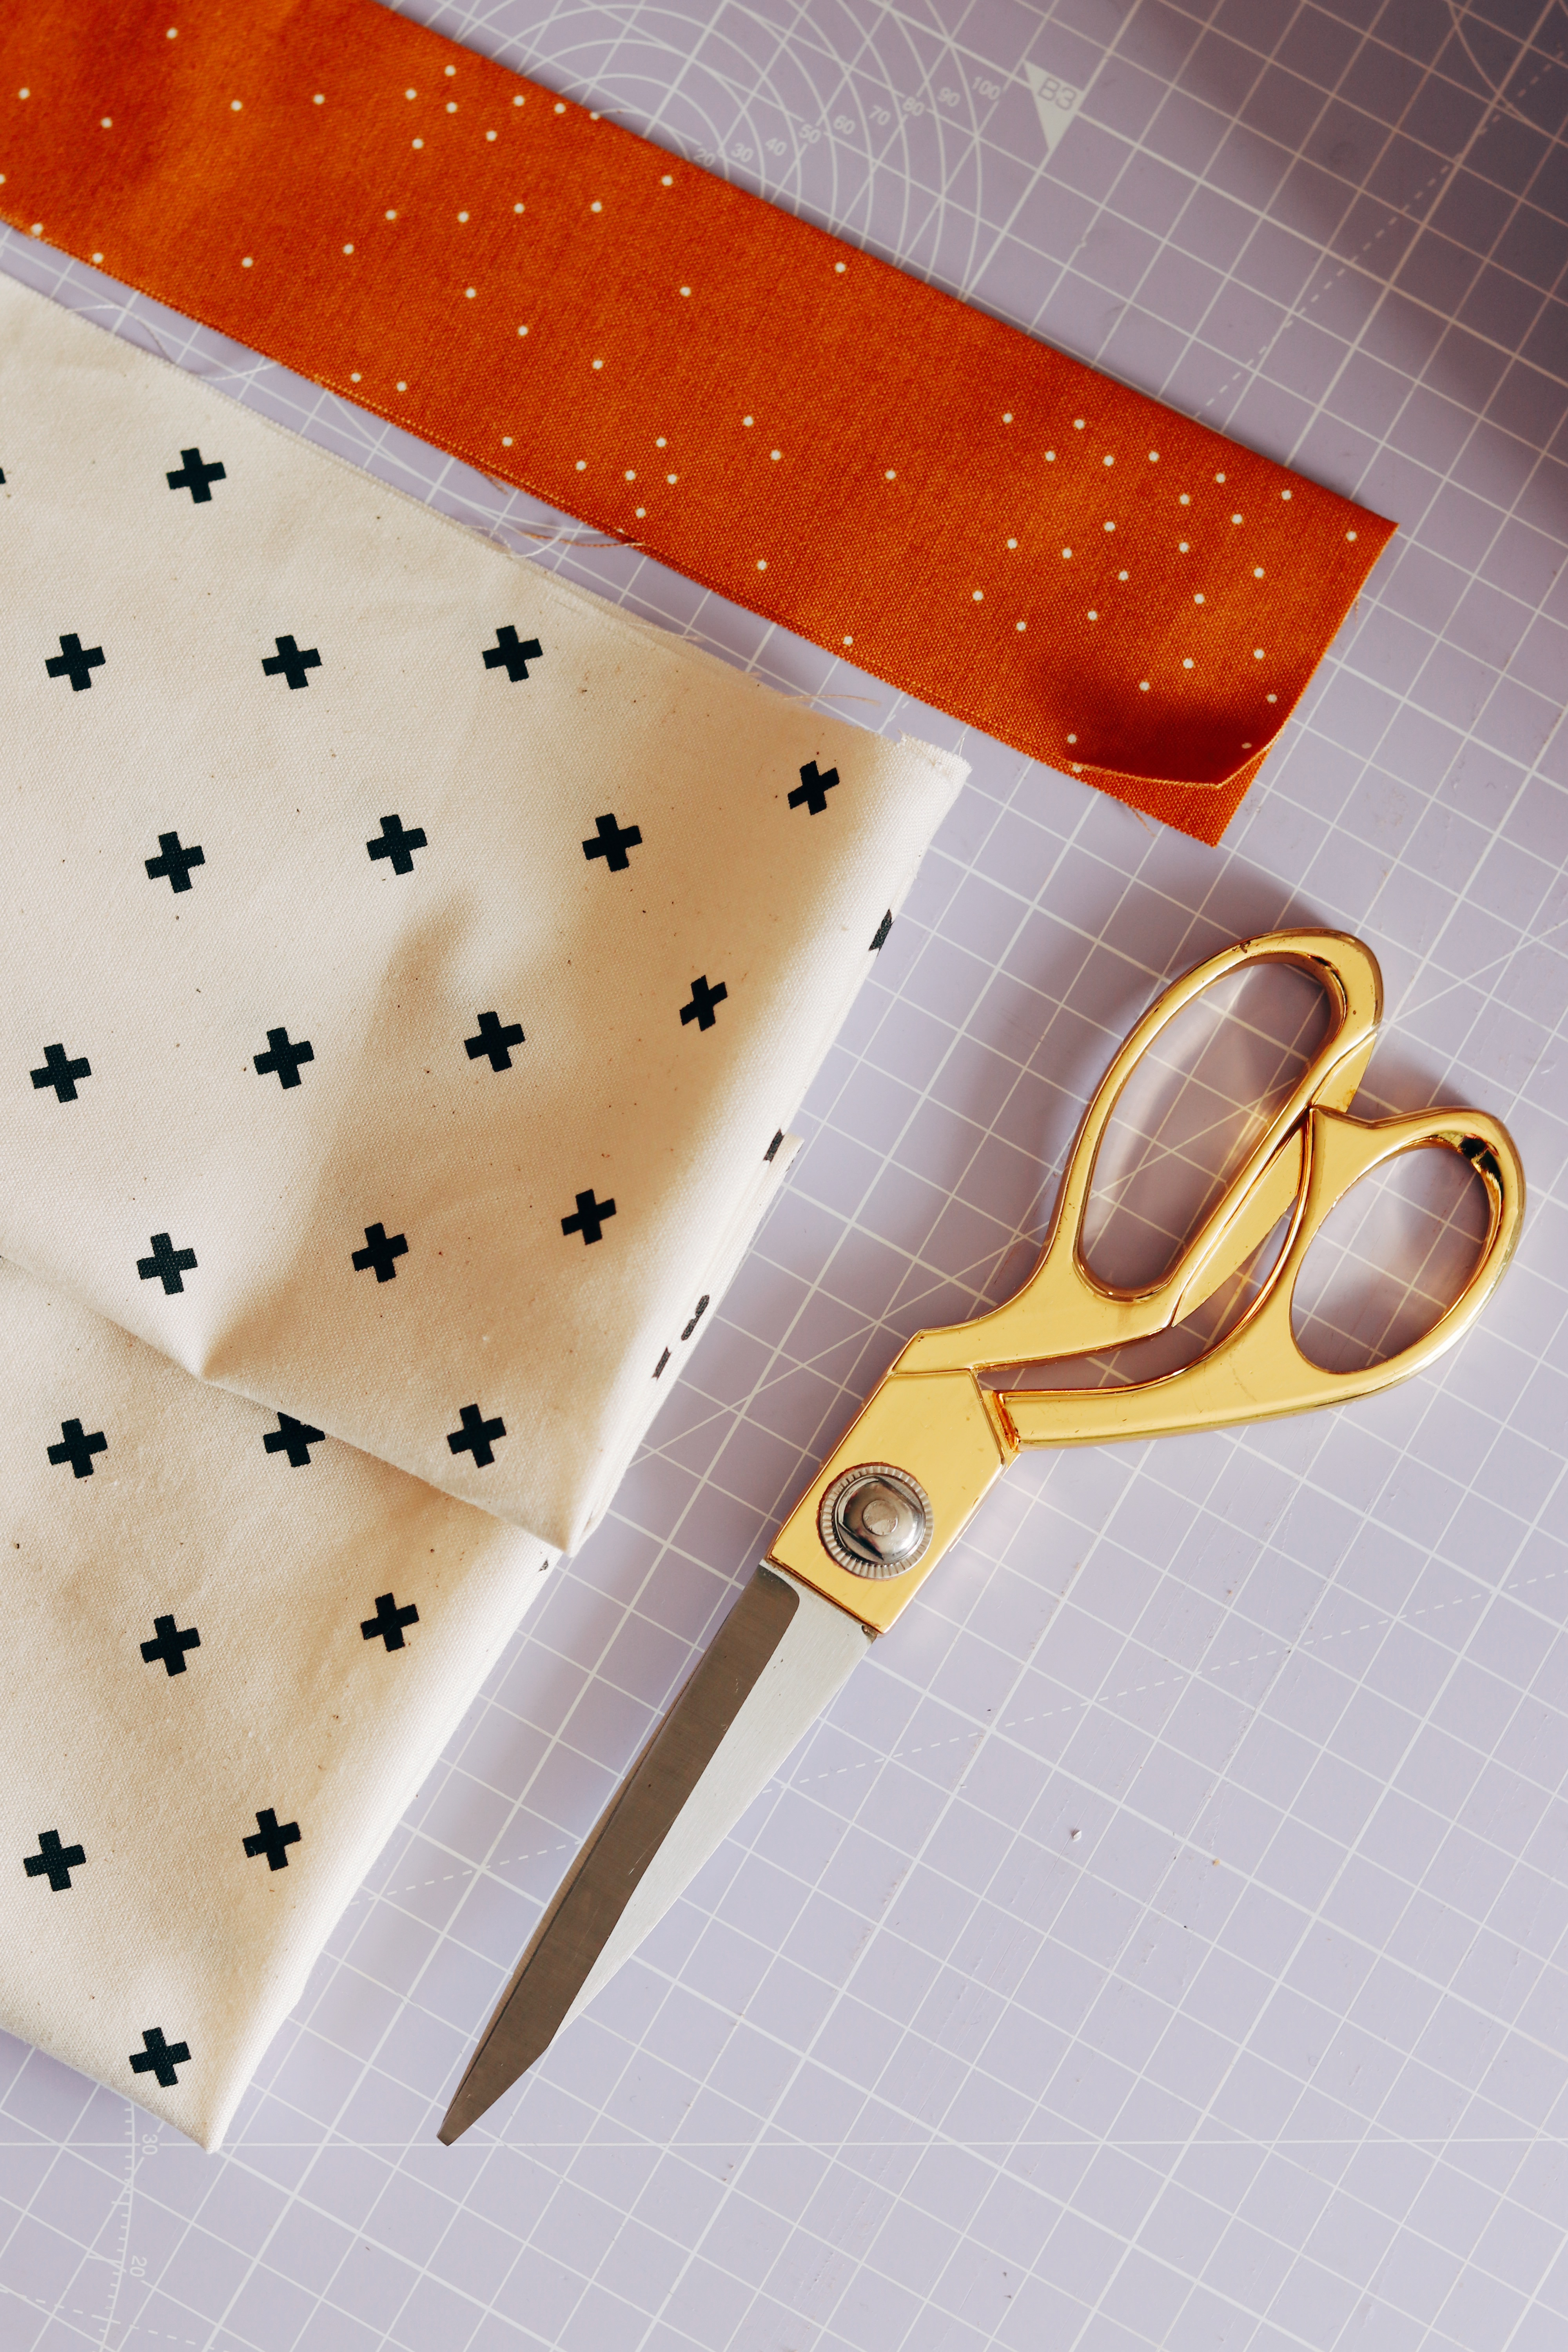 The contrasting topper fabric